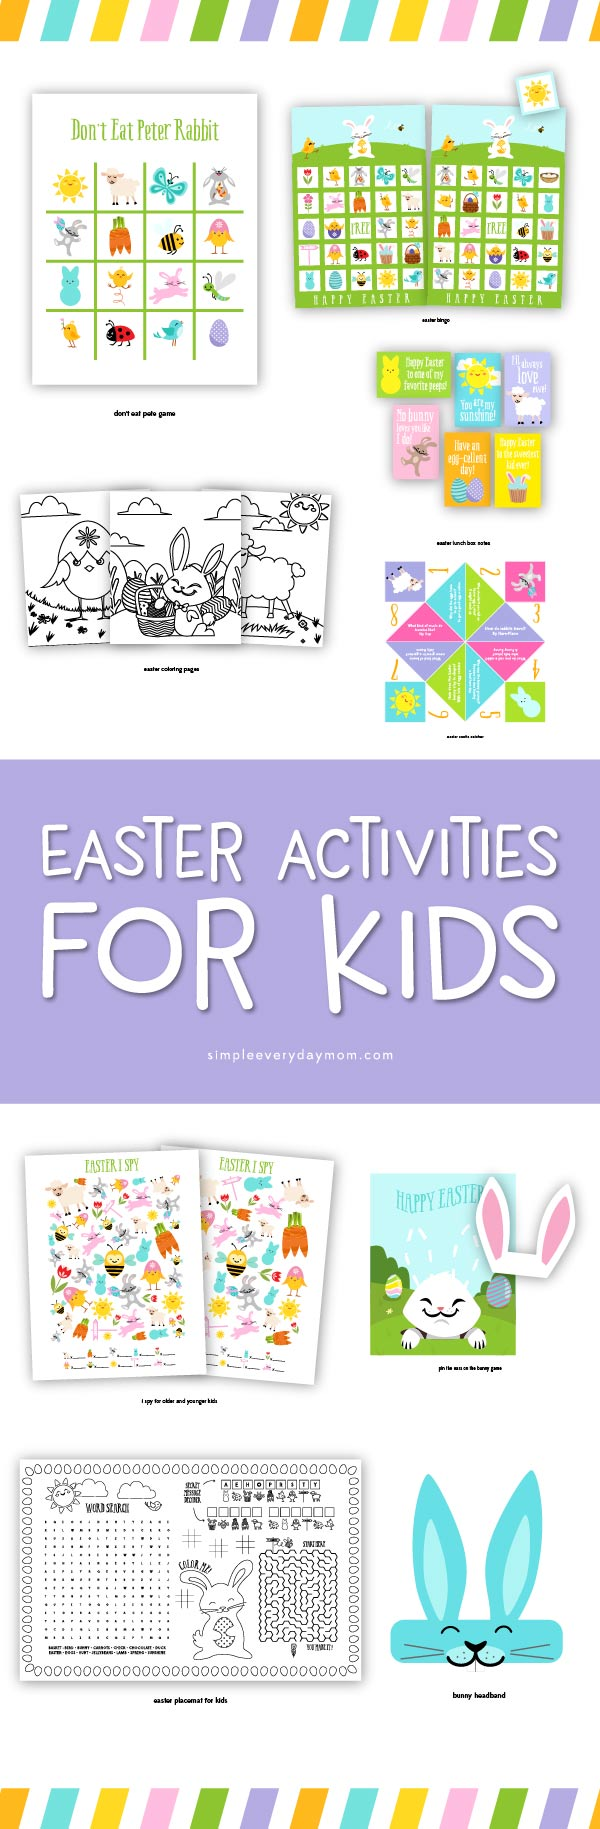 Easter Activities For Kids | Grab this fun package of Easter printables for kids that includes Easter bingo, lunch notes, I spy game, bunny headband, easter egg coupons, don't eat pete, printable placemat and more!